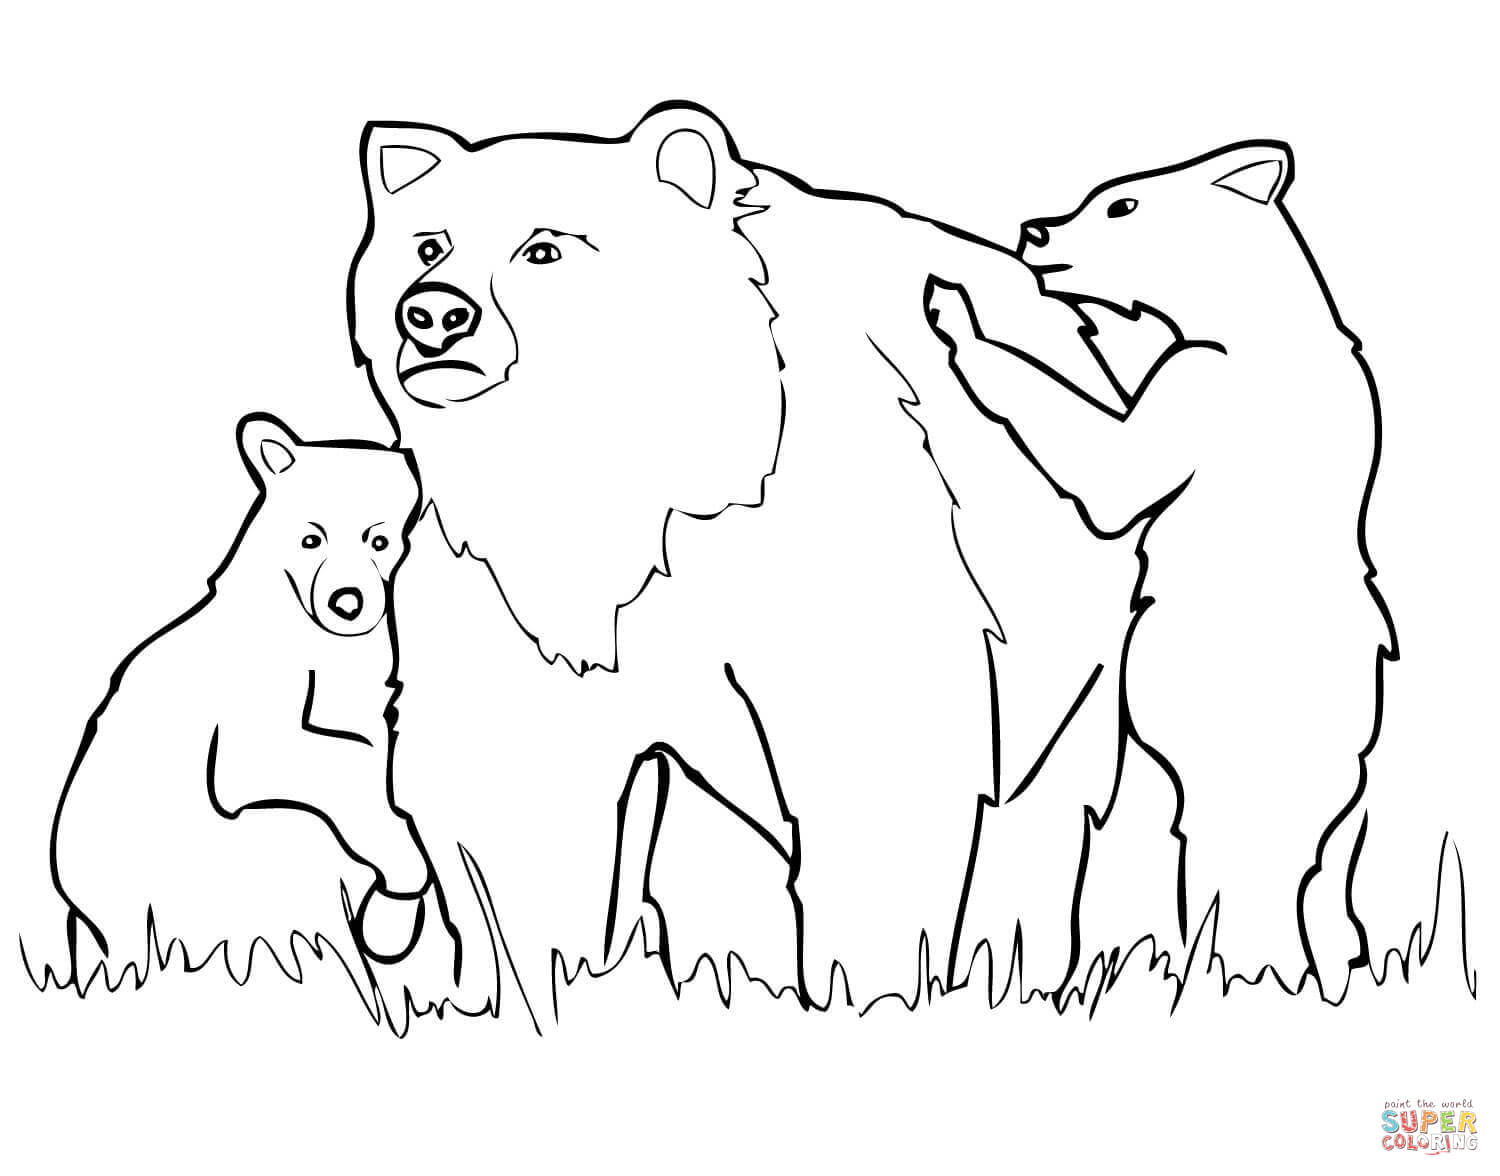 Grizzly Bear Drawing at GetDrawings